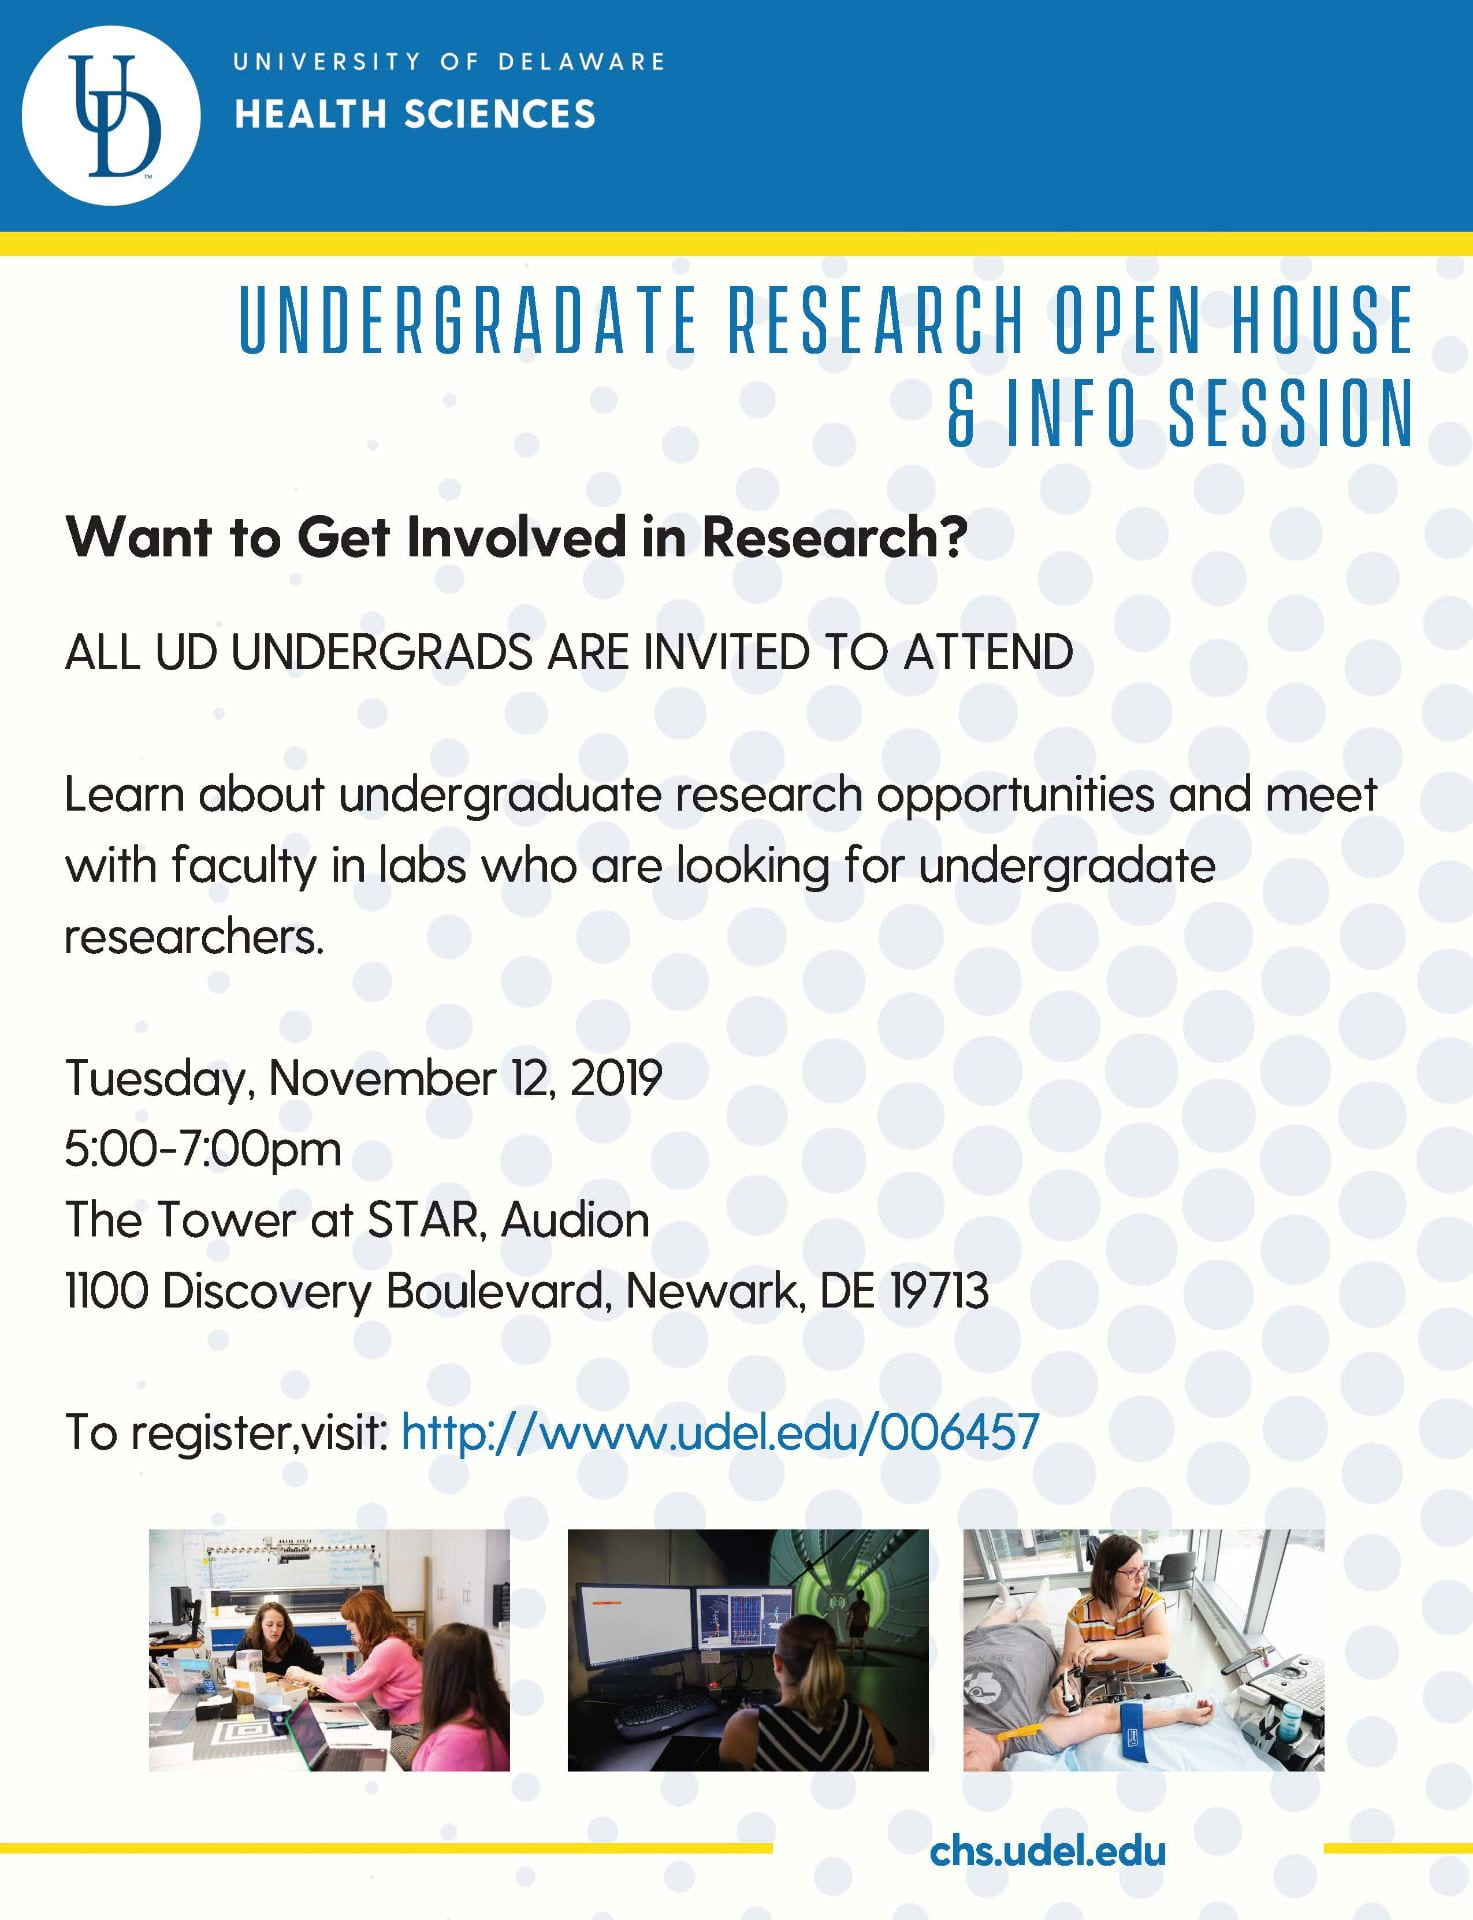 Undergraduate Research Open House & Info Session. Want to get involved in research? All UD undergrads are invited to attend. Learn about undergraduate research opportunities and meet with faculty in labs who are looking for undergraduate researchers. Tuesday, November 12, 2019 from 5-7 PM at the Tower at STAR, Audion, 1100 Discovery Boulevard, Newark, DE 19713. To register, visit: http://www.udel.edu/006457. chs.udel.edu